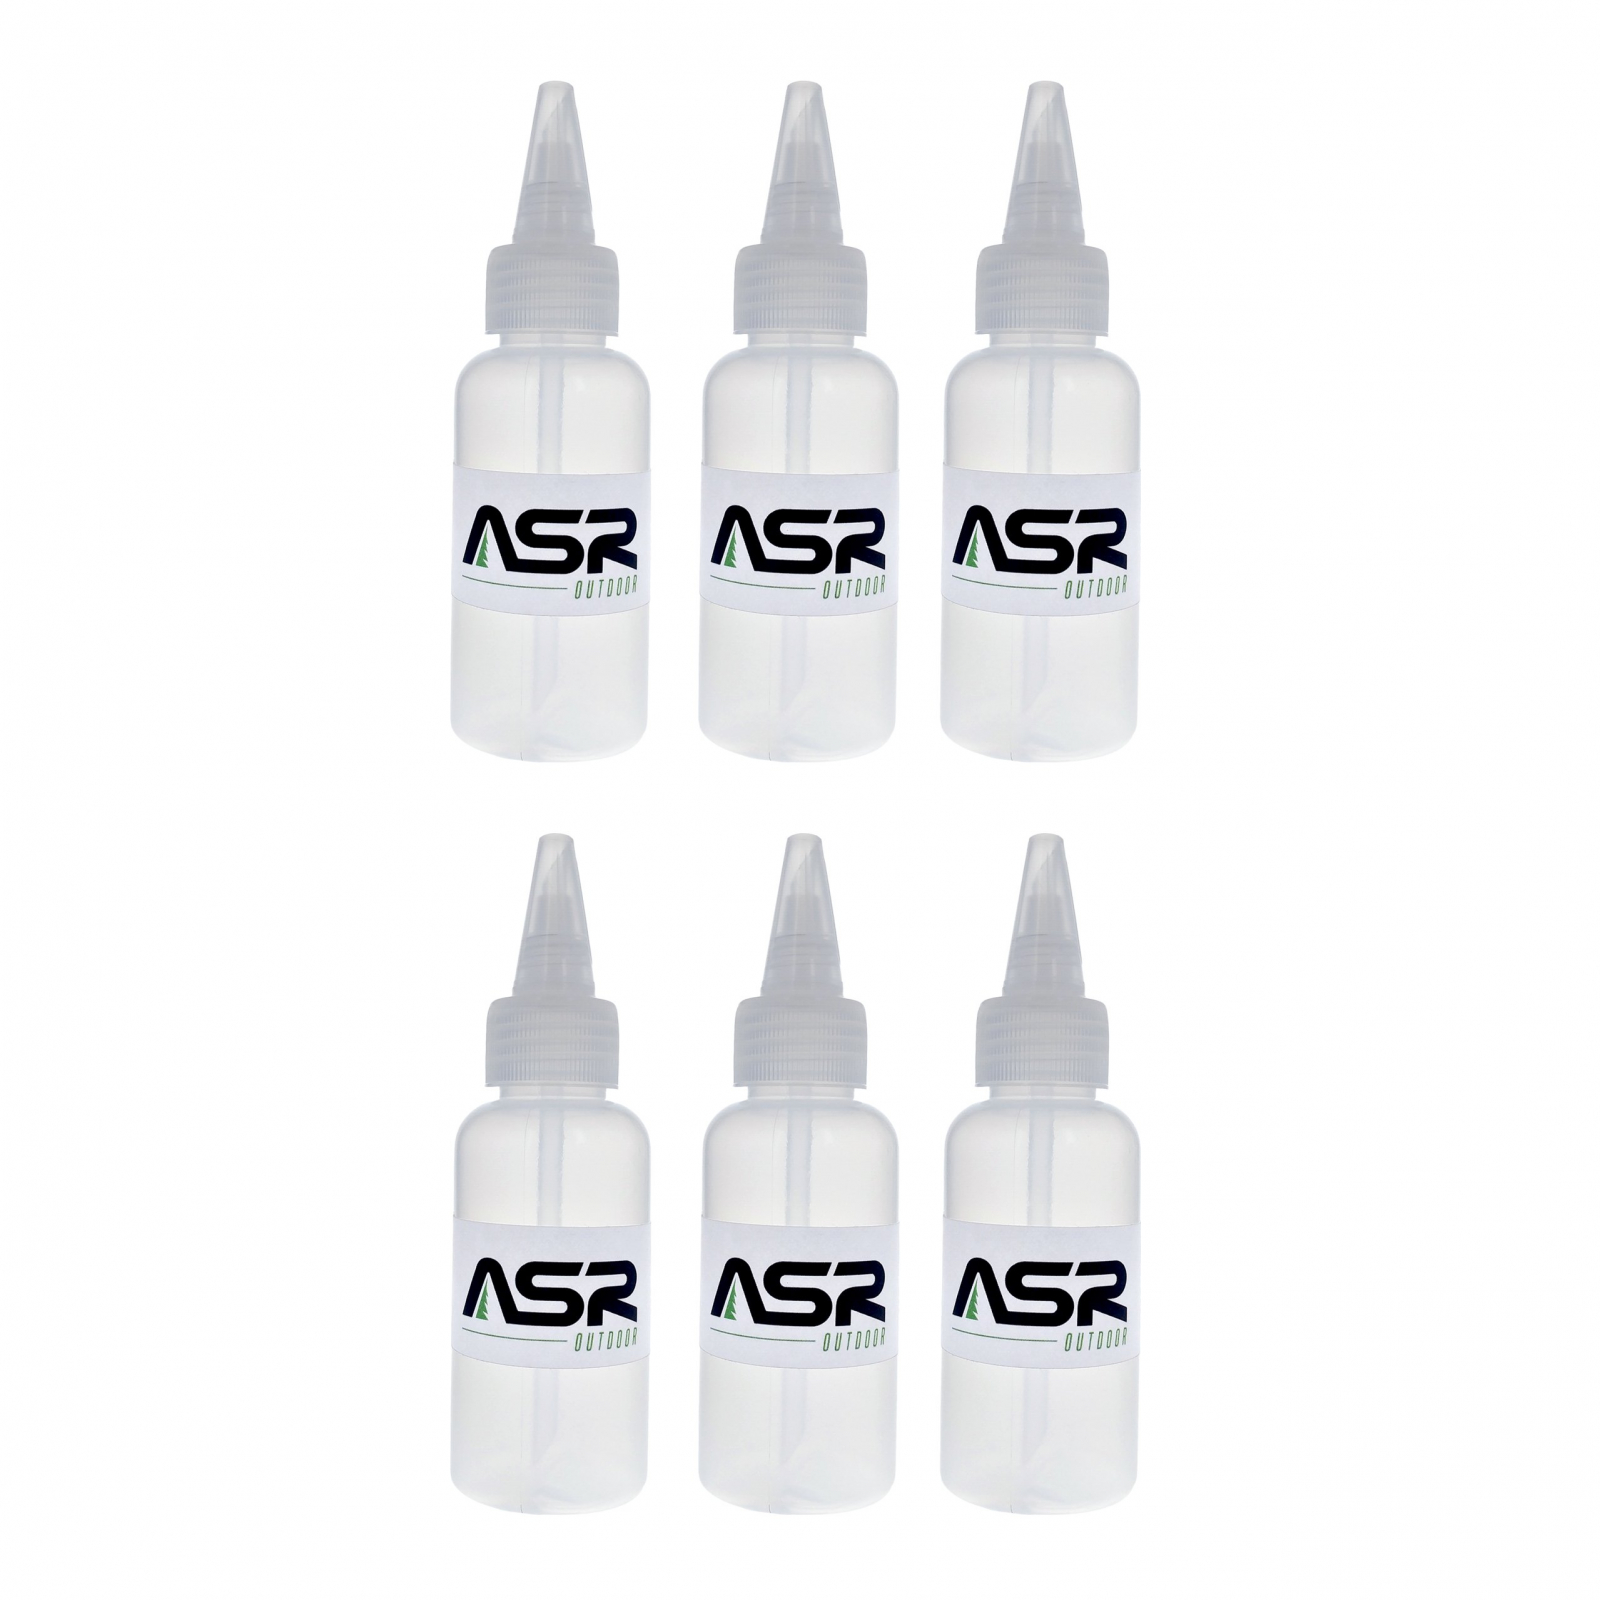 ASR Outdoor Compact 3oz Gold Snifter Squeeze Bottle - 6 Pack